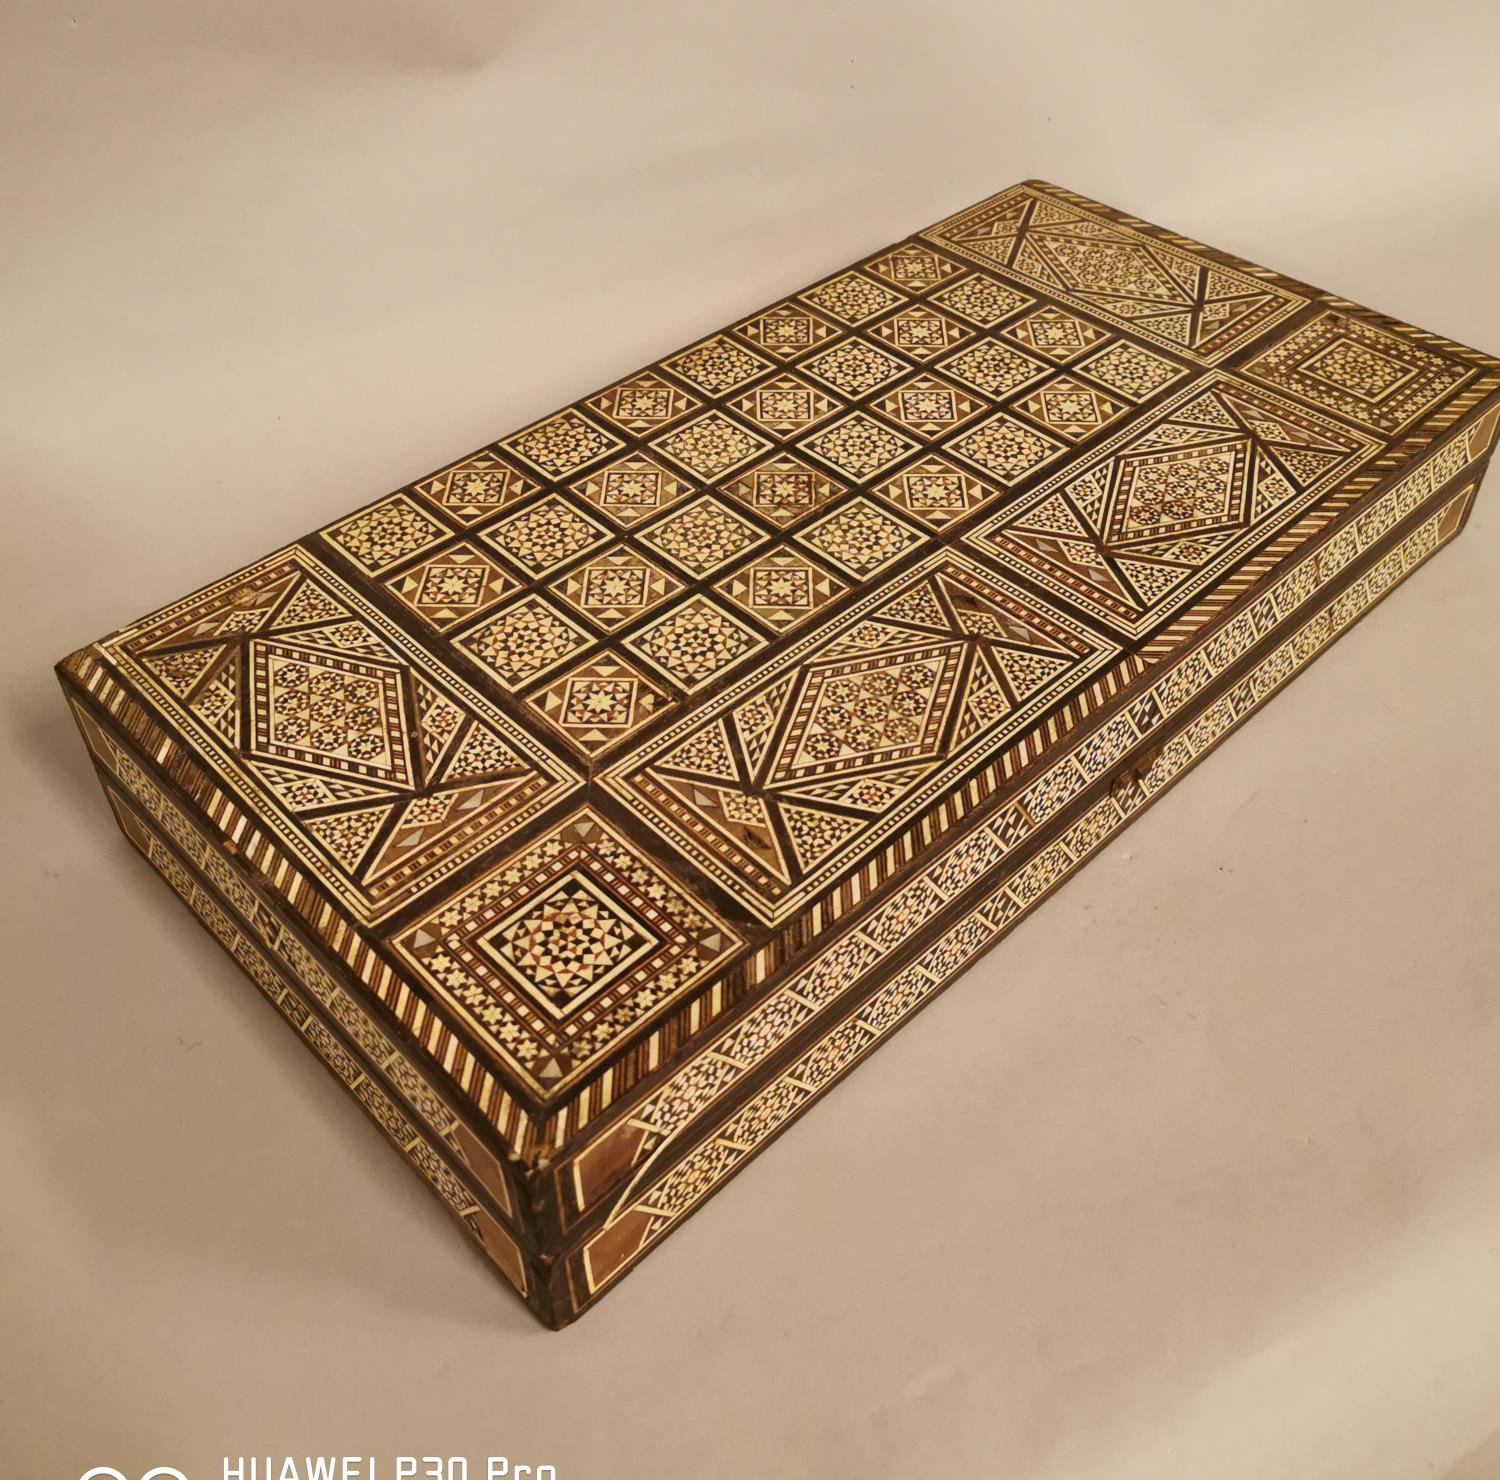 Early 20th C. backgammon games board inlaid with bone and ebony in the Anglo Indian style { - Image 5 of 6